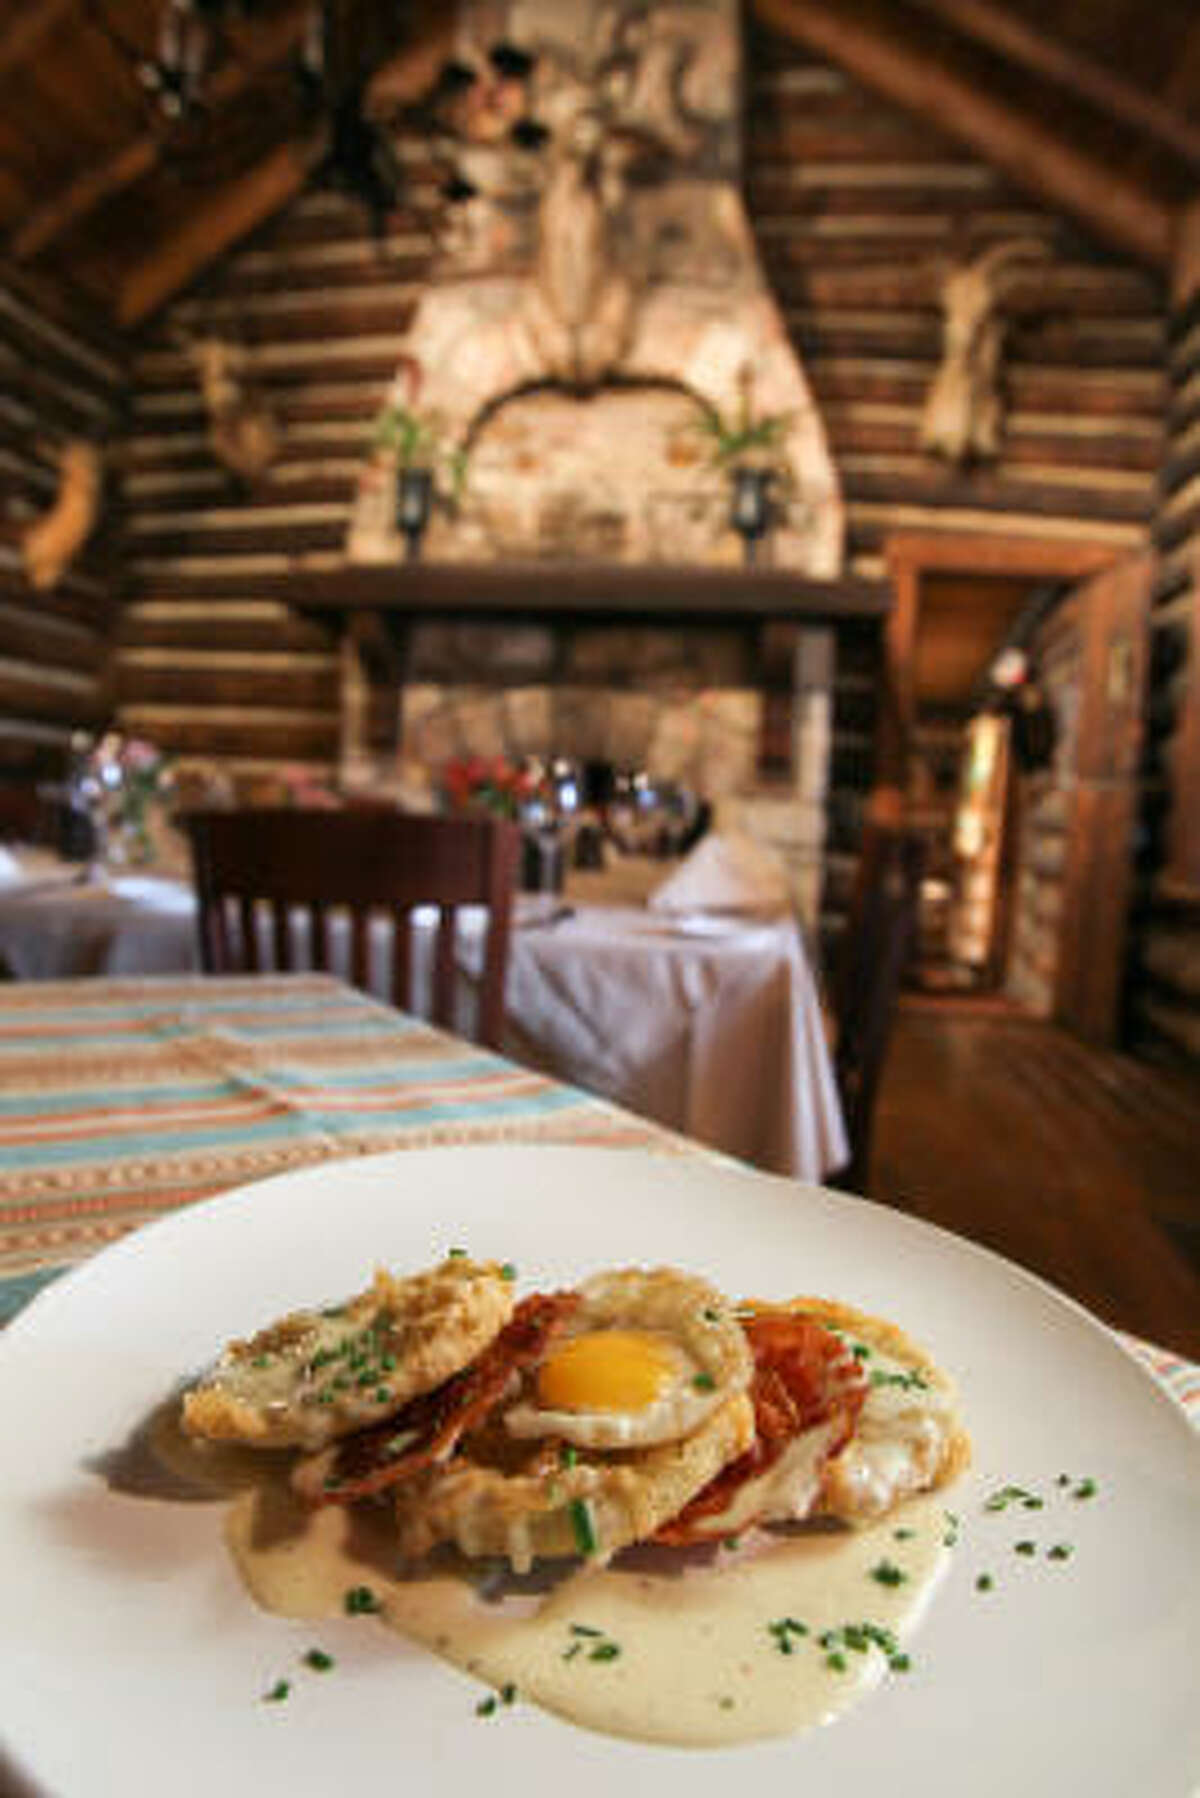 Rainbow Lodge's dinner appetizer menu includes a dish with fried green tomatoes, pancetta and a quail egg served with a country-style gravy.